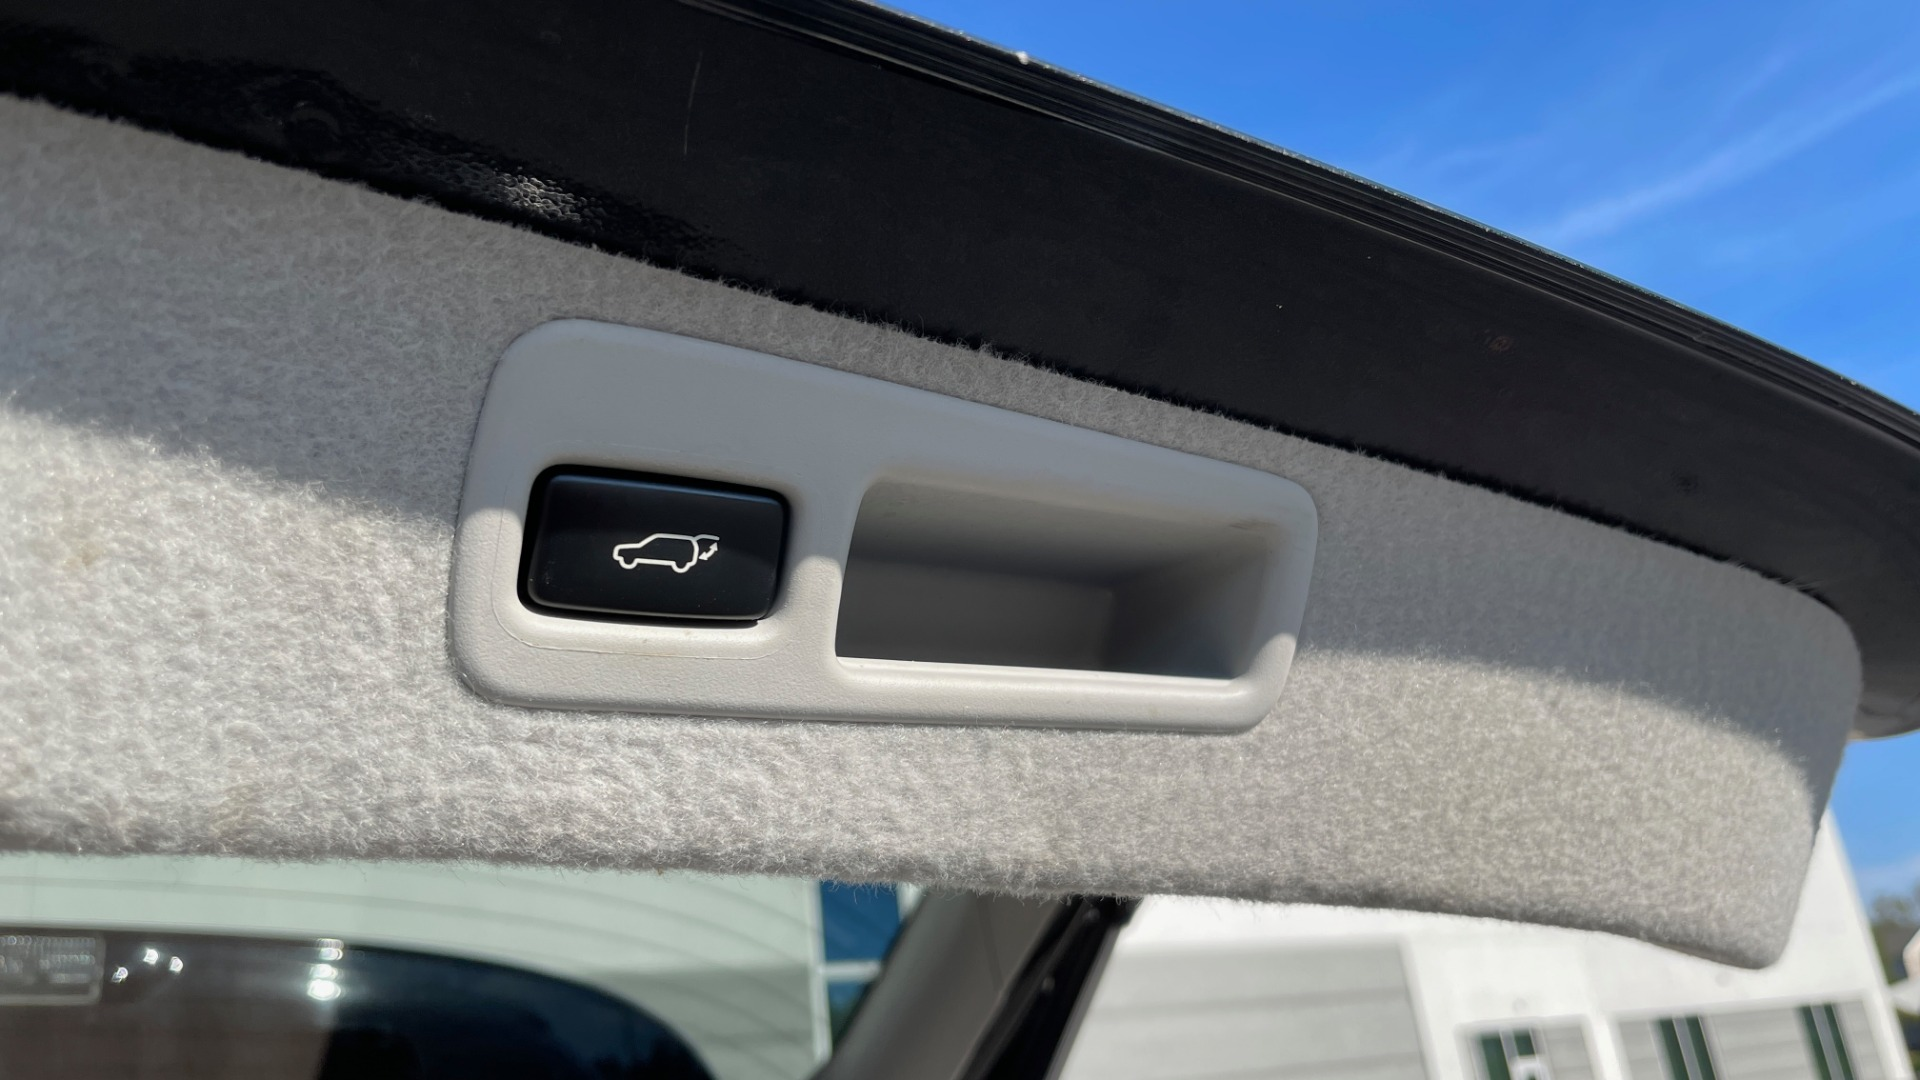 Used 2011 Lexus RX 350 PREMIUM / TOWING PREP PKG / VENTILATED STS / SUNROOF / REARVIEW for sale Sold at Formula Imports in Charlotte NC 28227 20